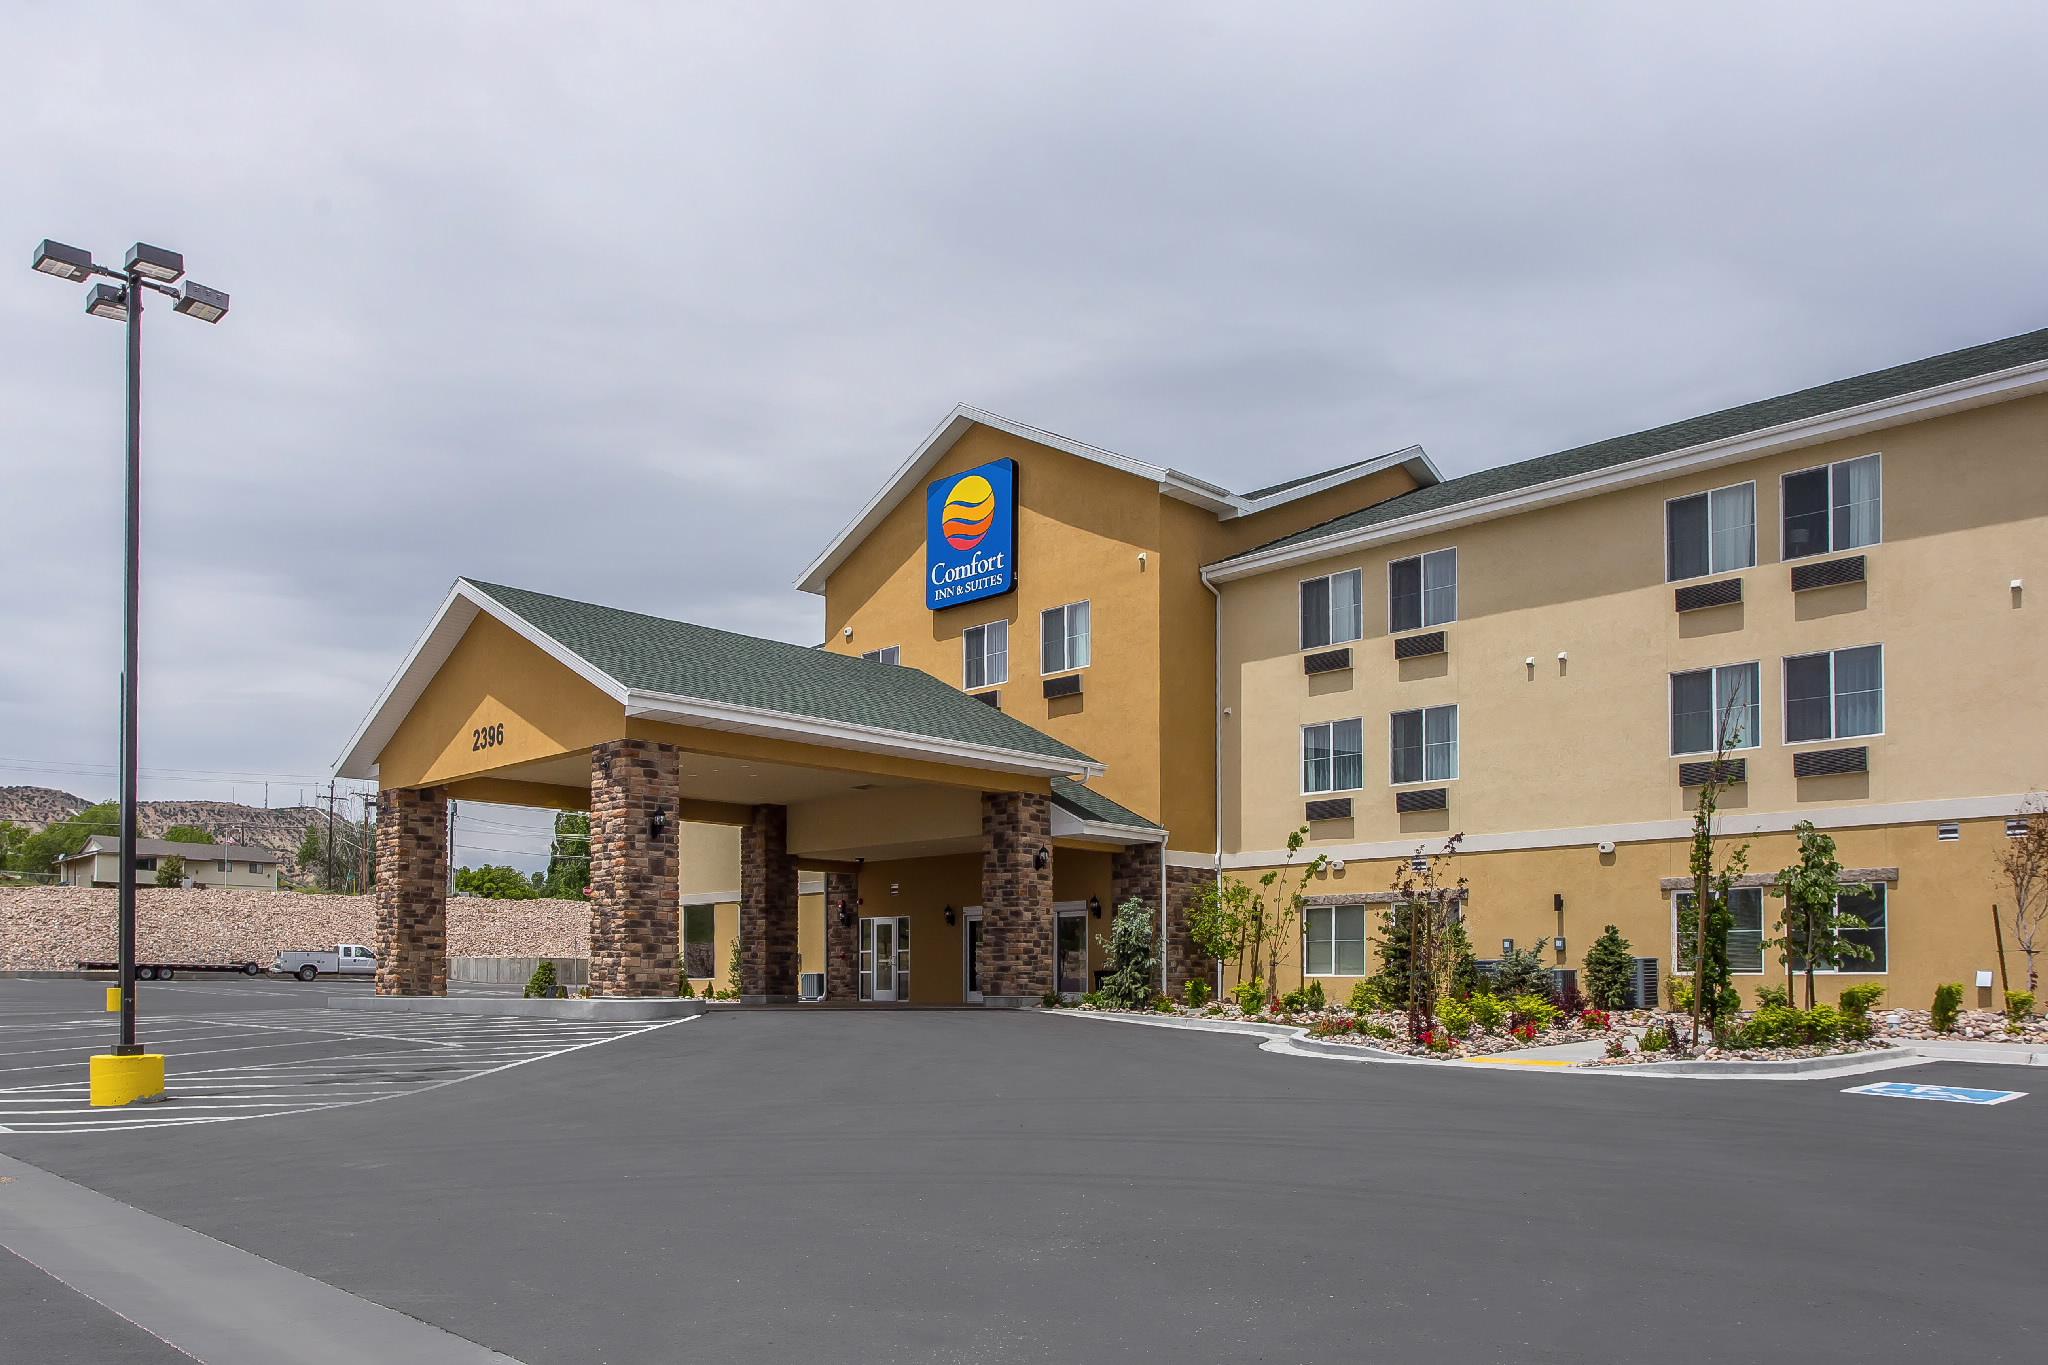 Comfort Inn Amp Suites In Vernal Ut Whitepages